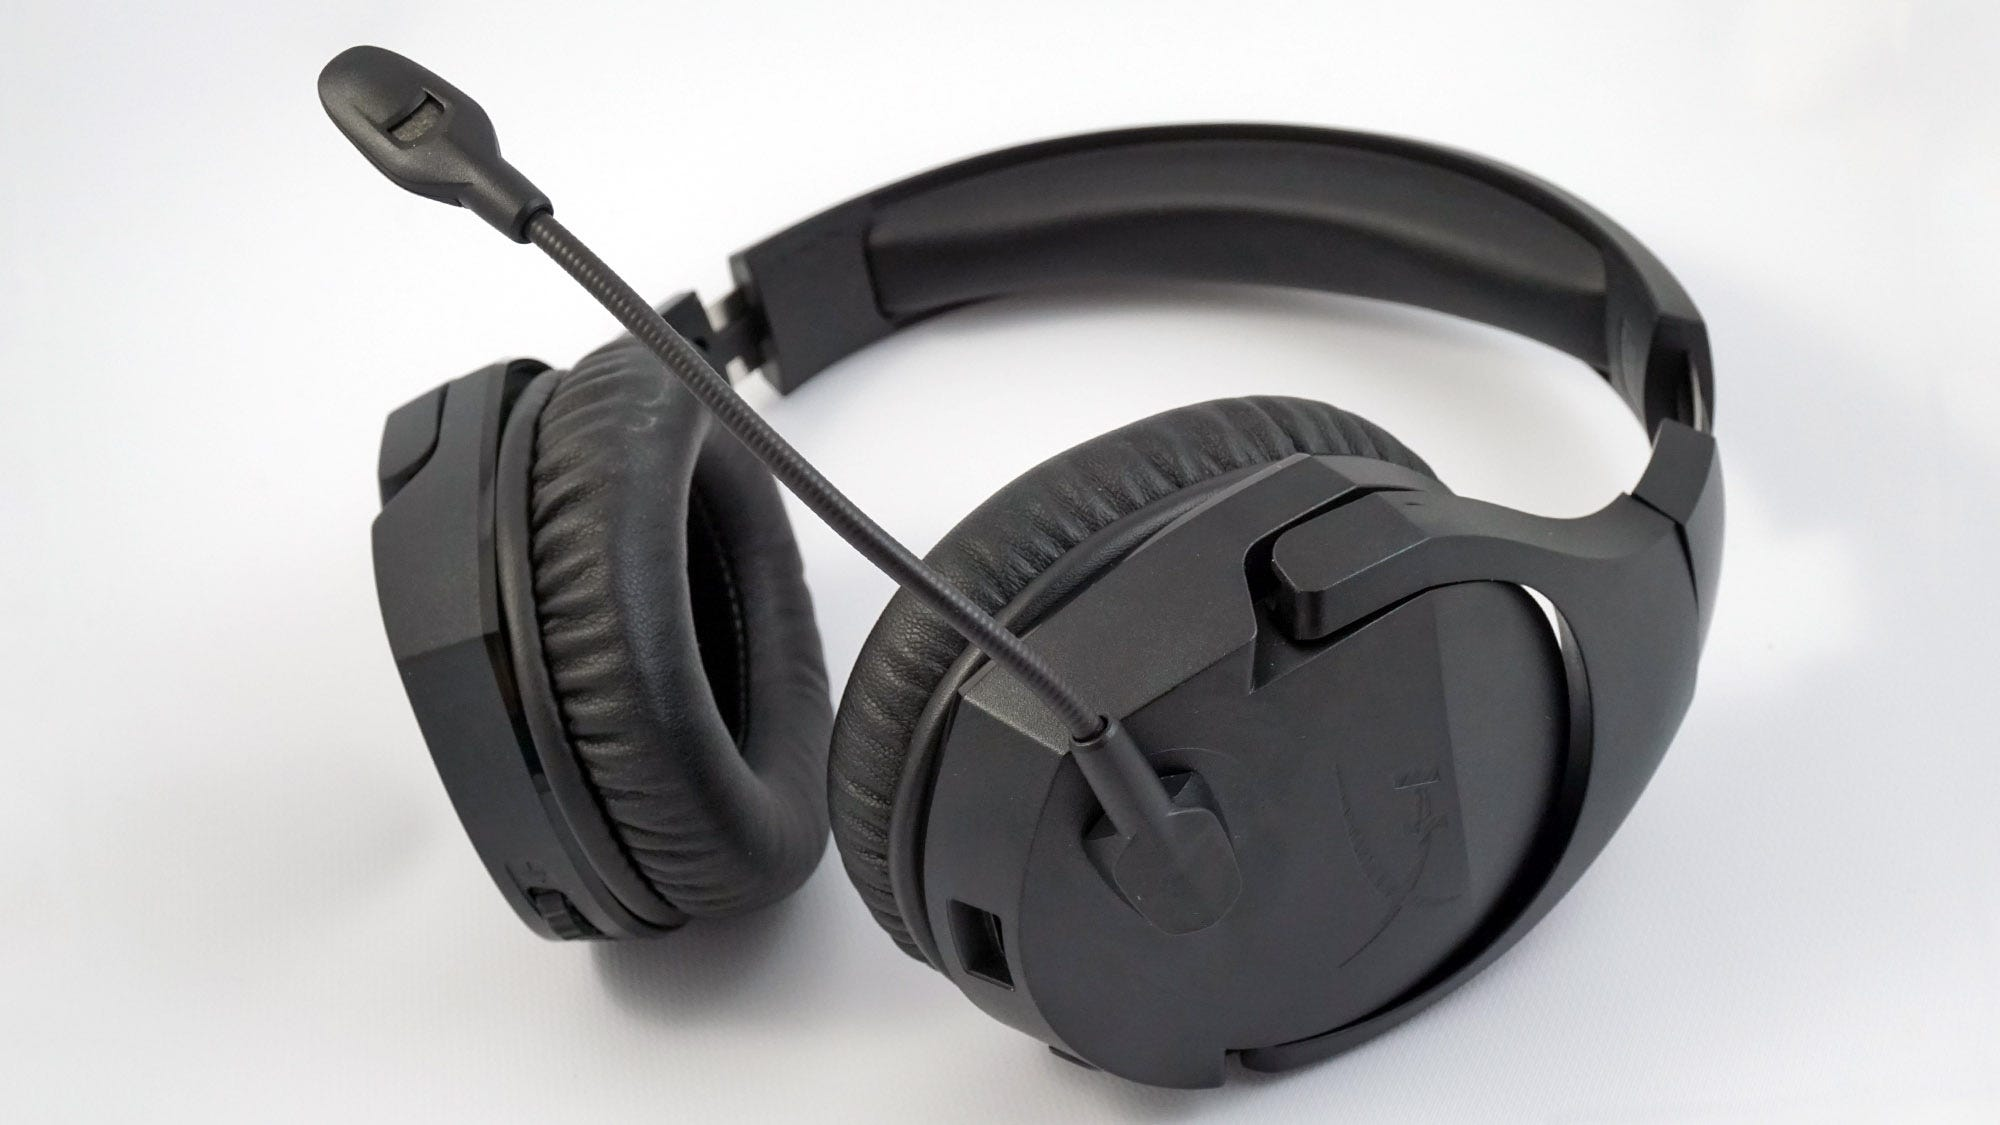 The HyperX Cloud Stinger is a lightweight, comfy, but somewhat limited headeset.